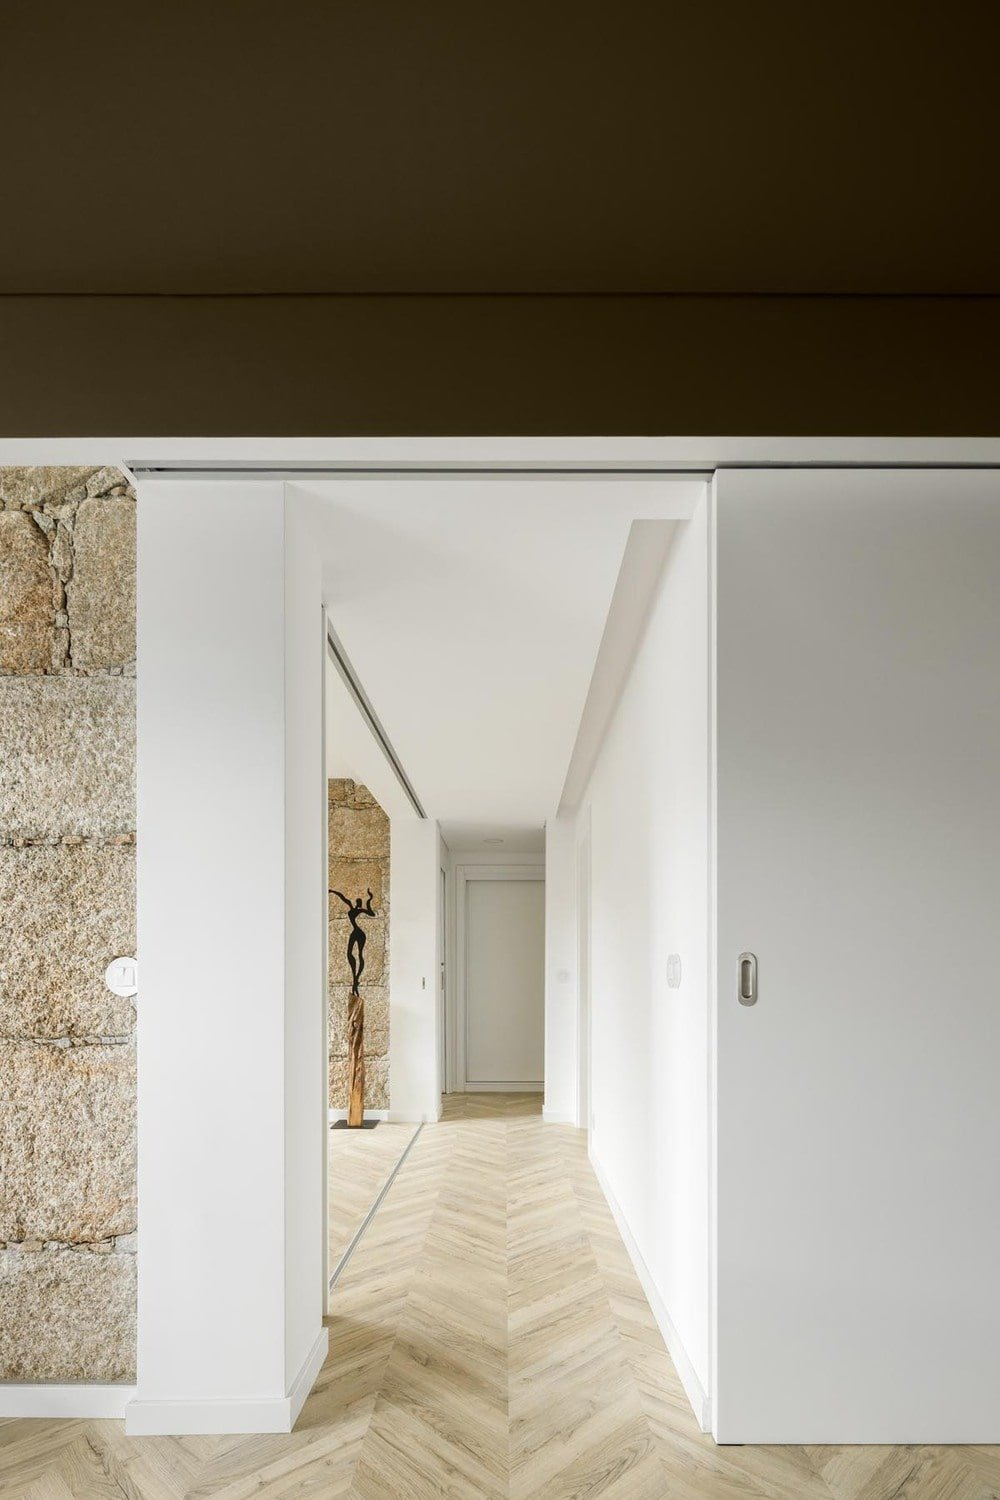 This is a view of a hallway with herringbone marble flooring and white walls.